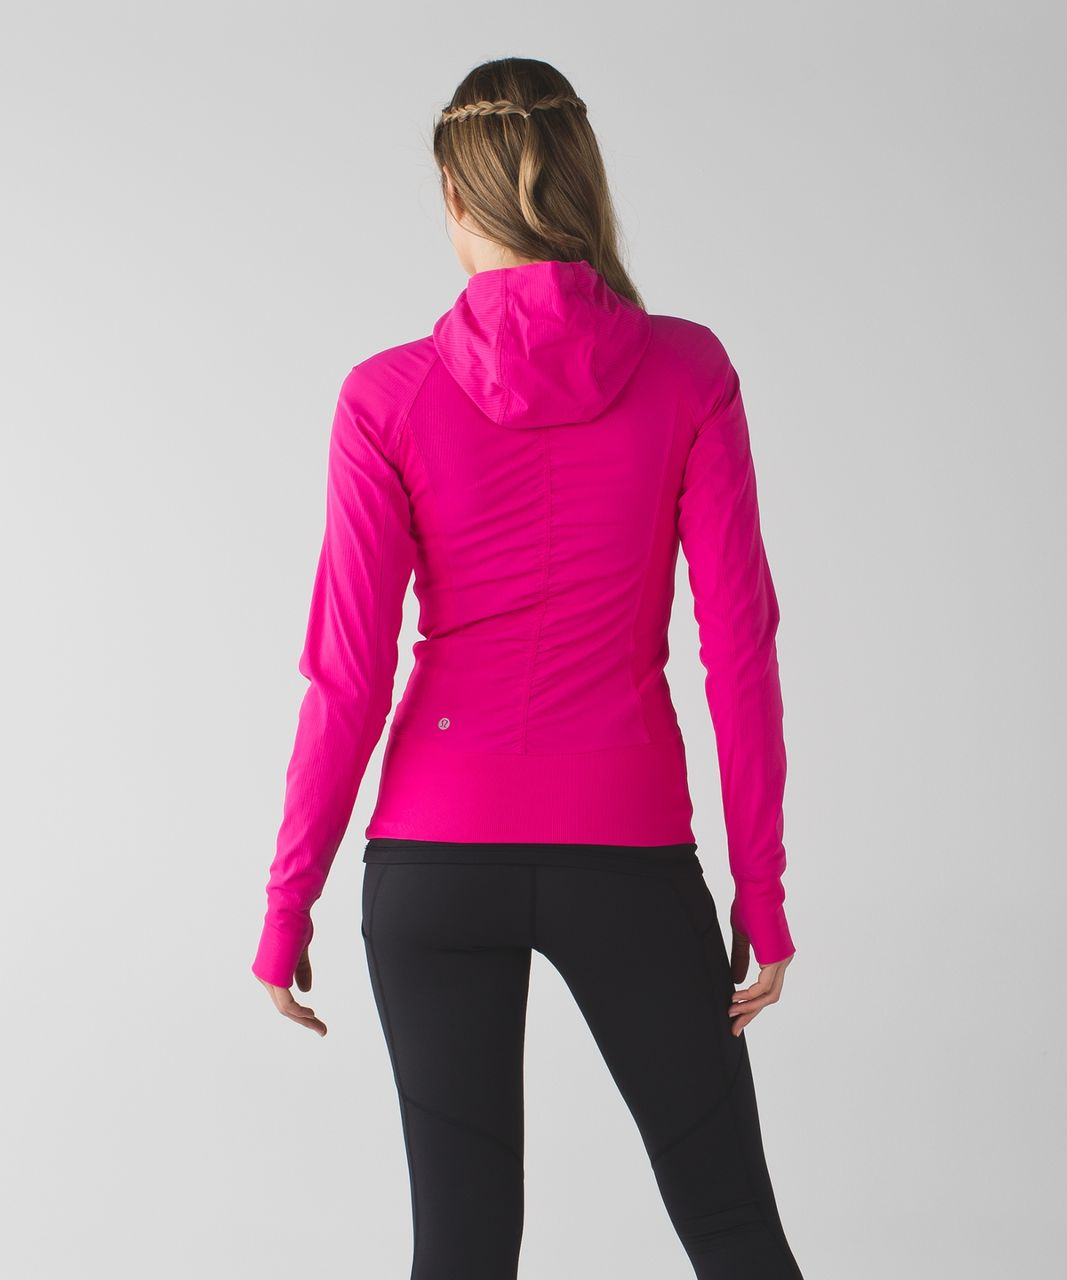 Lululemon In Flux Jacket - Jewelled Magenta